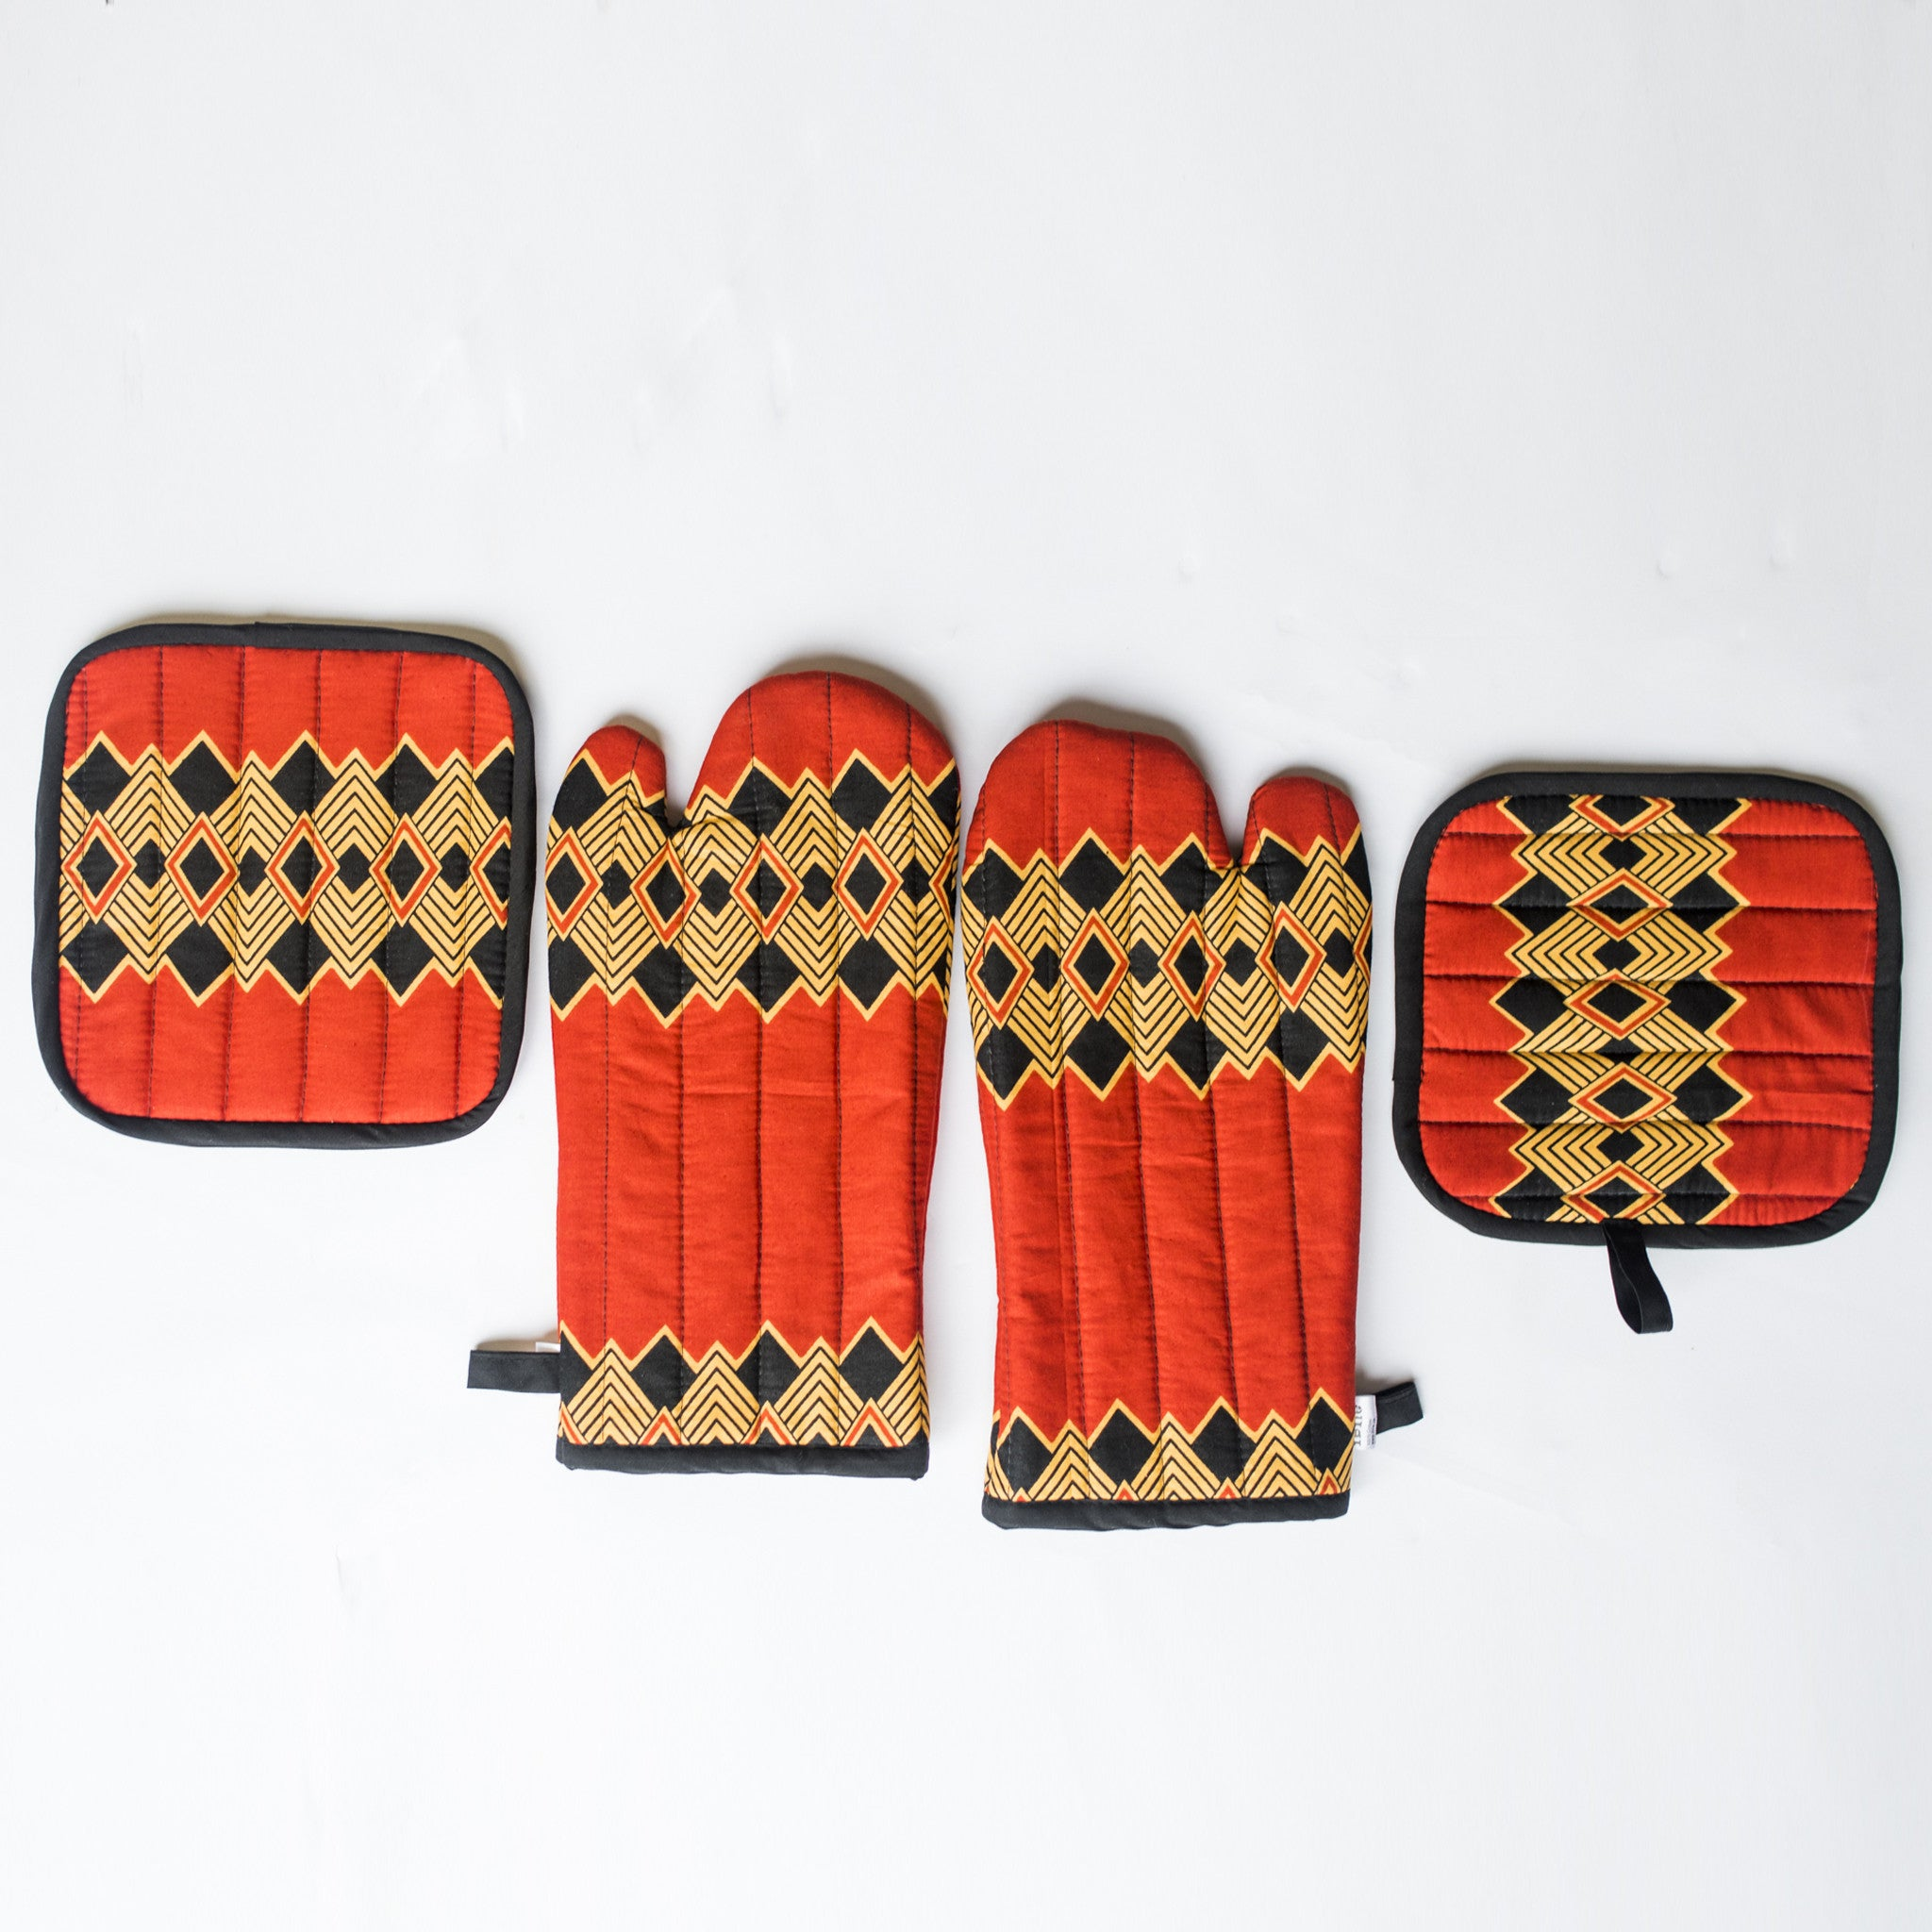 AFRICAN PRINT SET OF POT HOLDERS BY IBILE